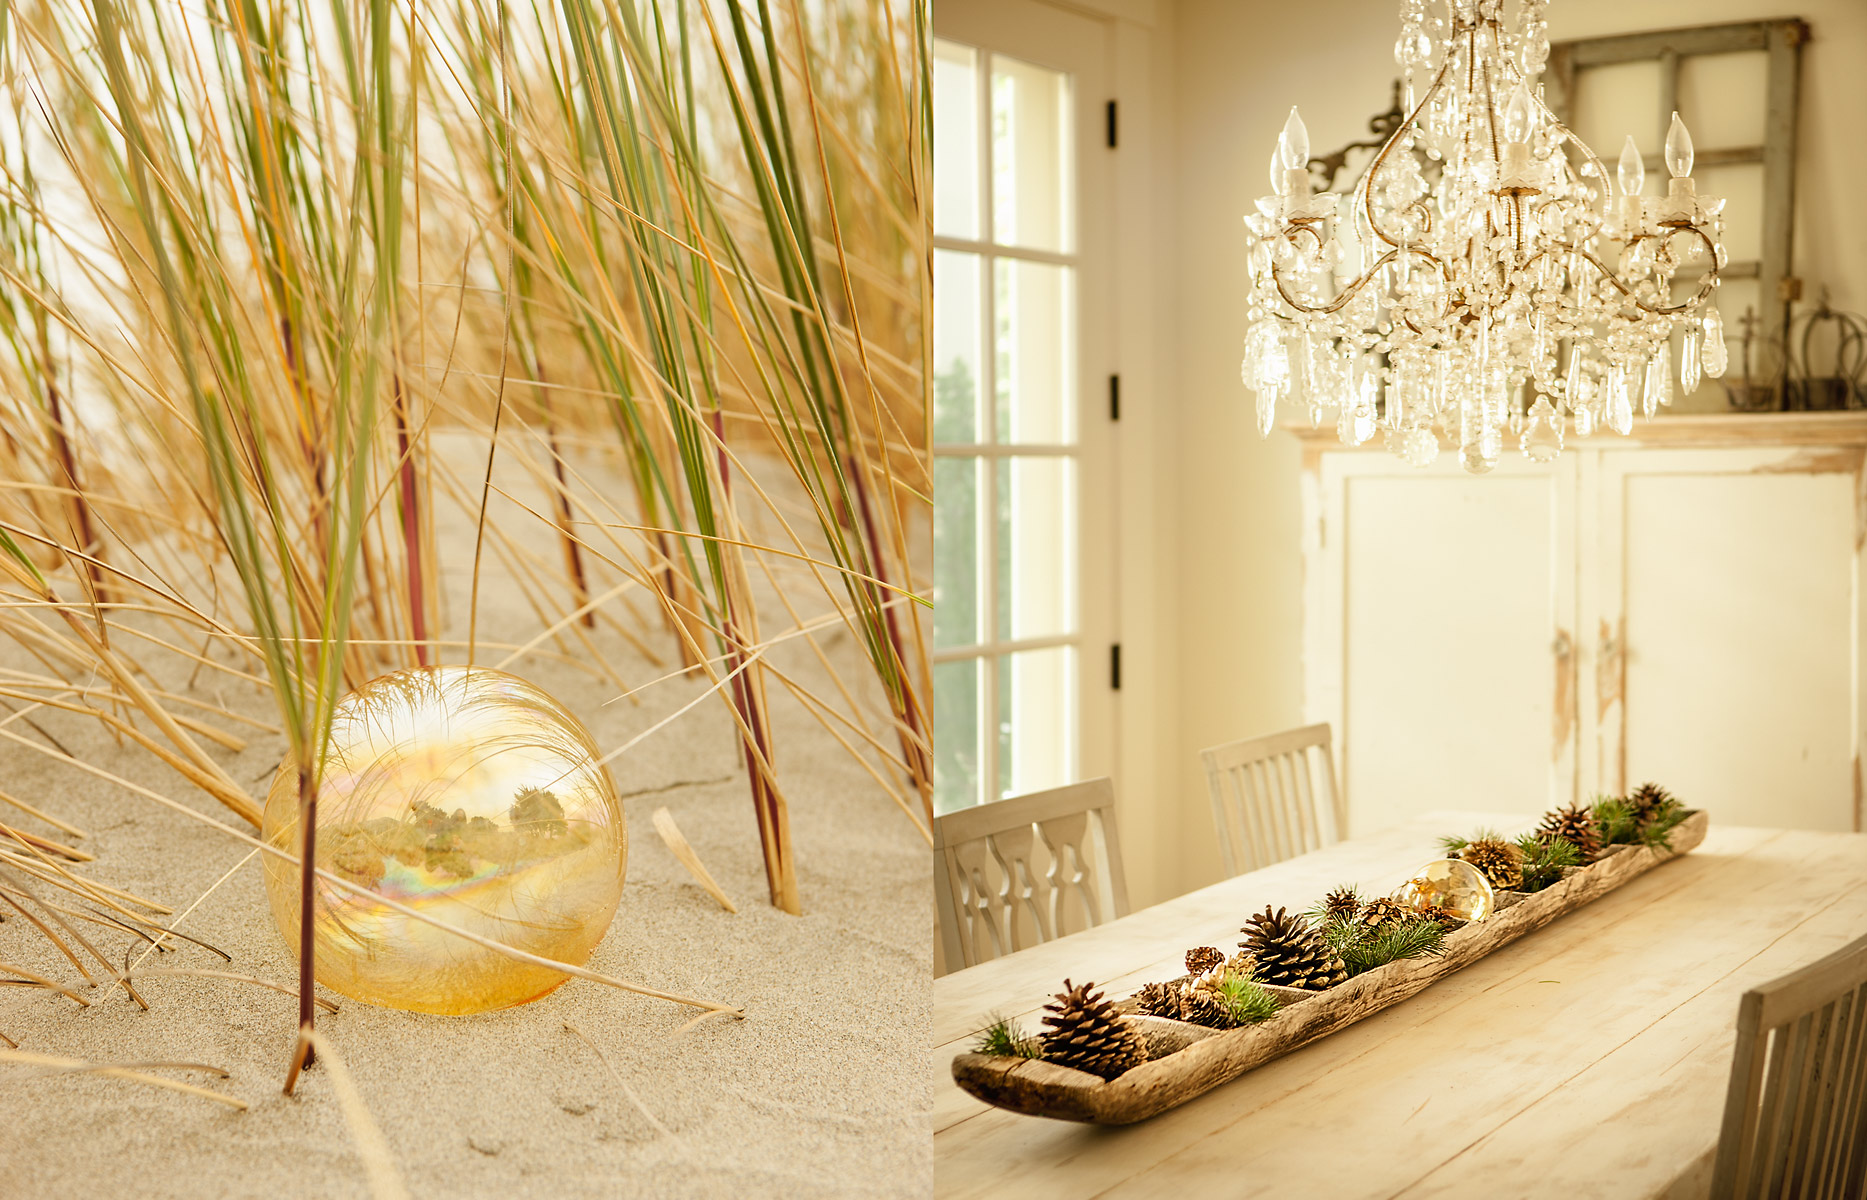 liverpool-glass_ball_on_beachchandelier_with_pinecone_placesetting_on_table-spread